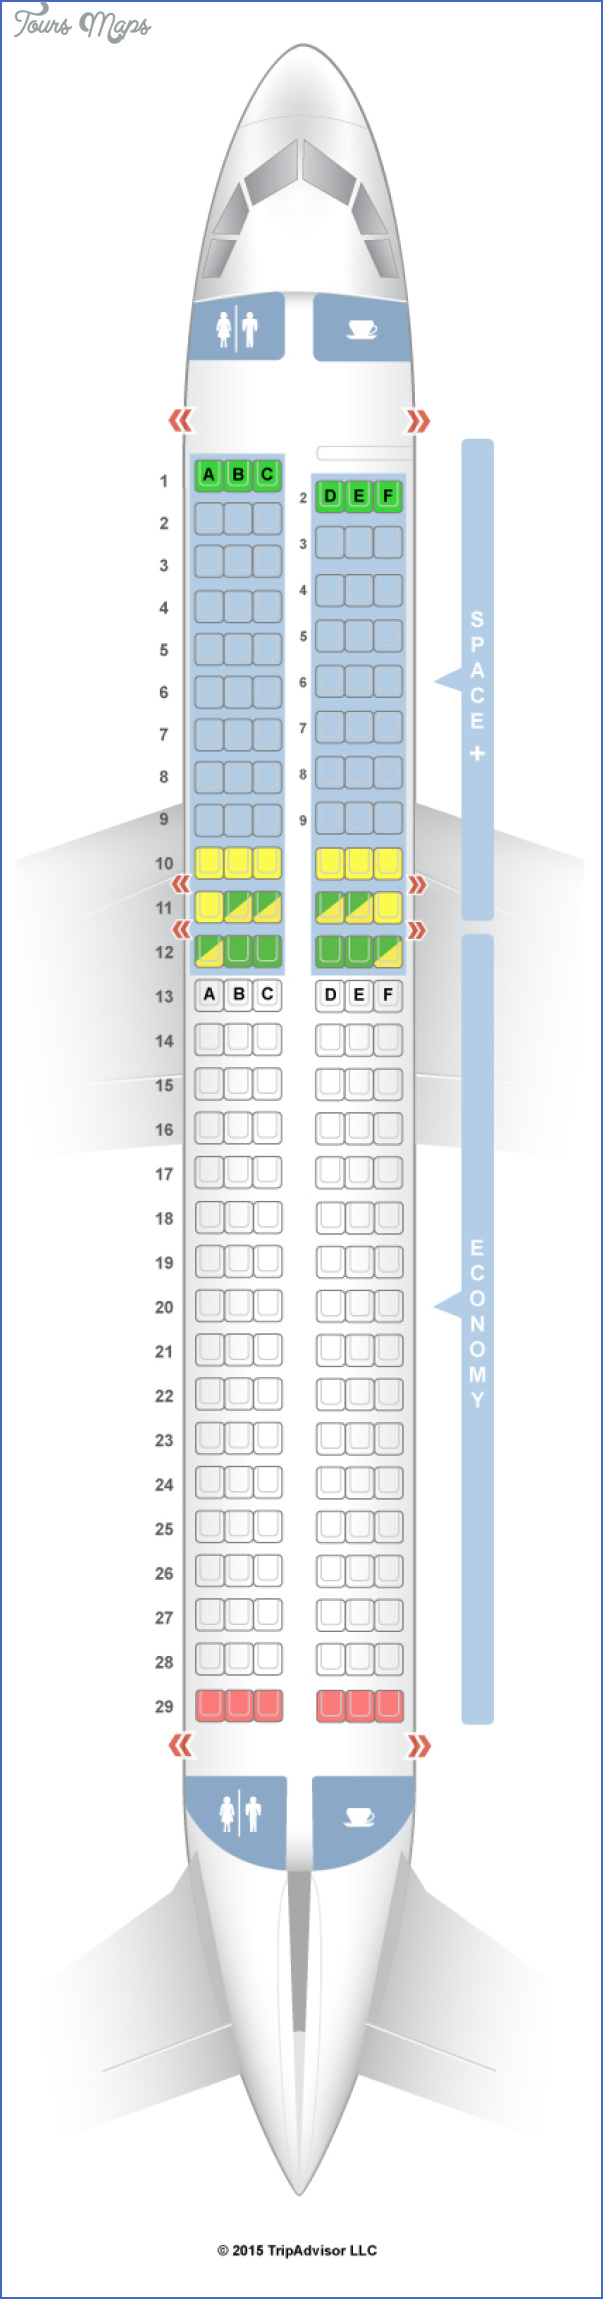 air new zealand airbus a320d Air New Zealand Seat Map